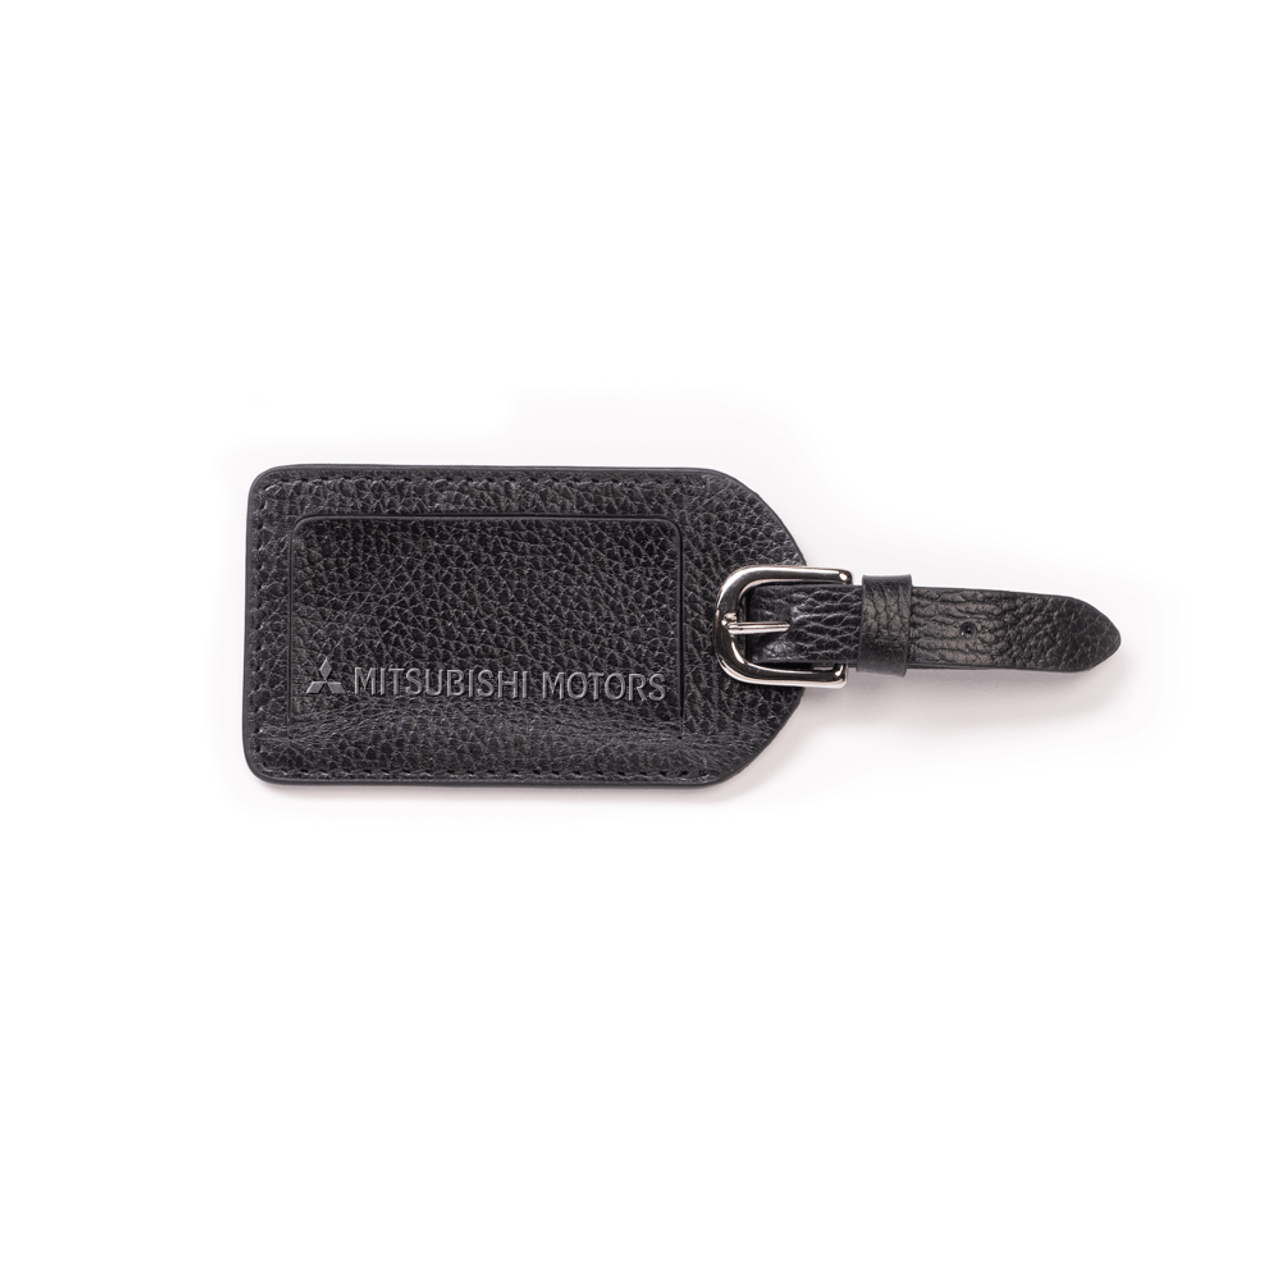 Pebble Leather Luggage Tag